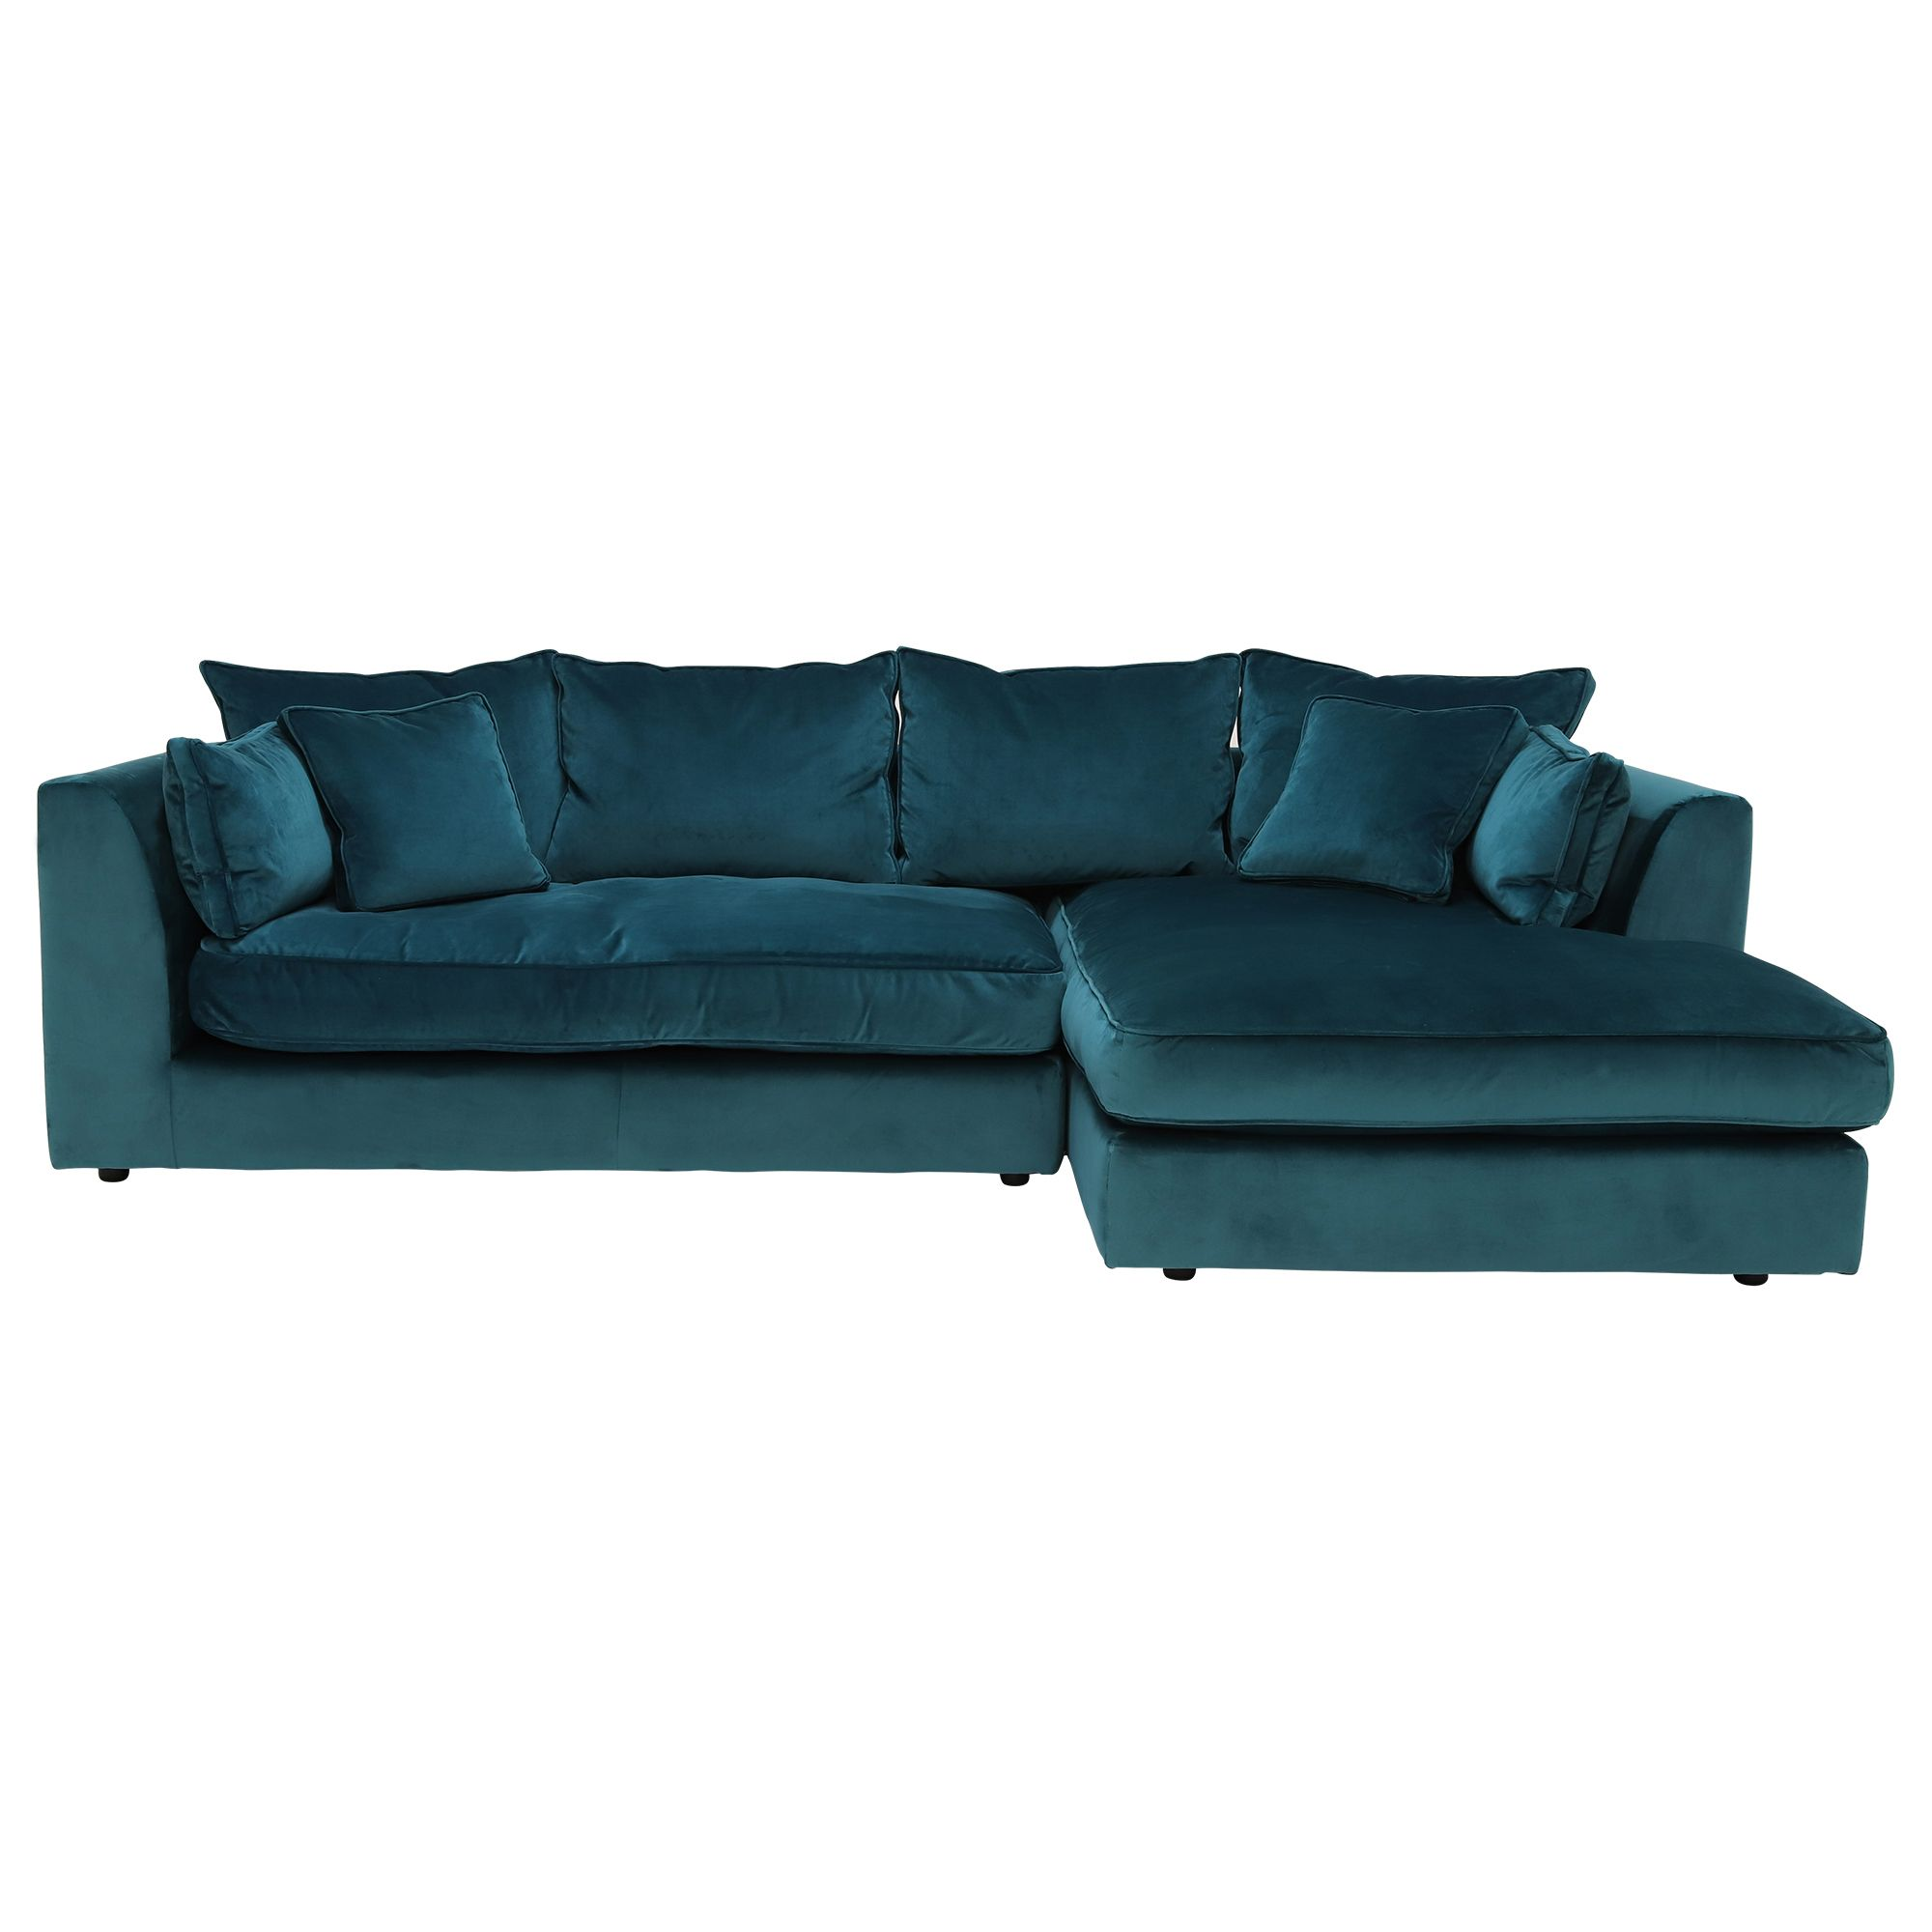 Prime Harrington Small Chaise Velvet Sofa Rhf Barker Onthecornerstone Fun Painted Chair Ideas Images Onthecornerstoneorg